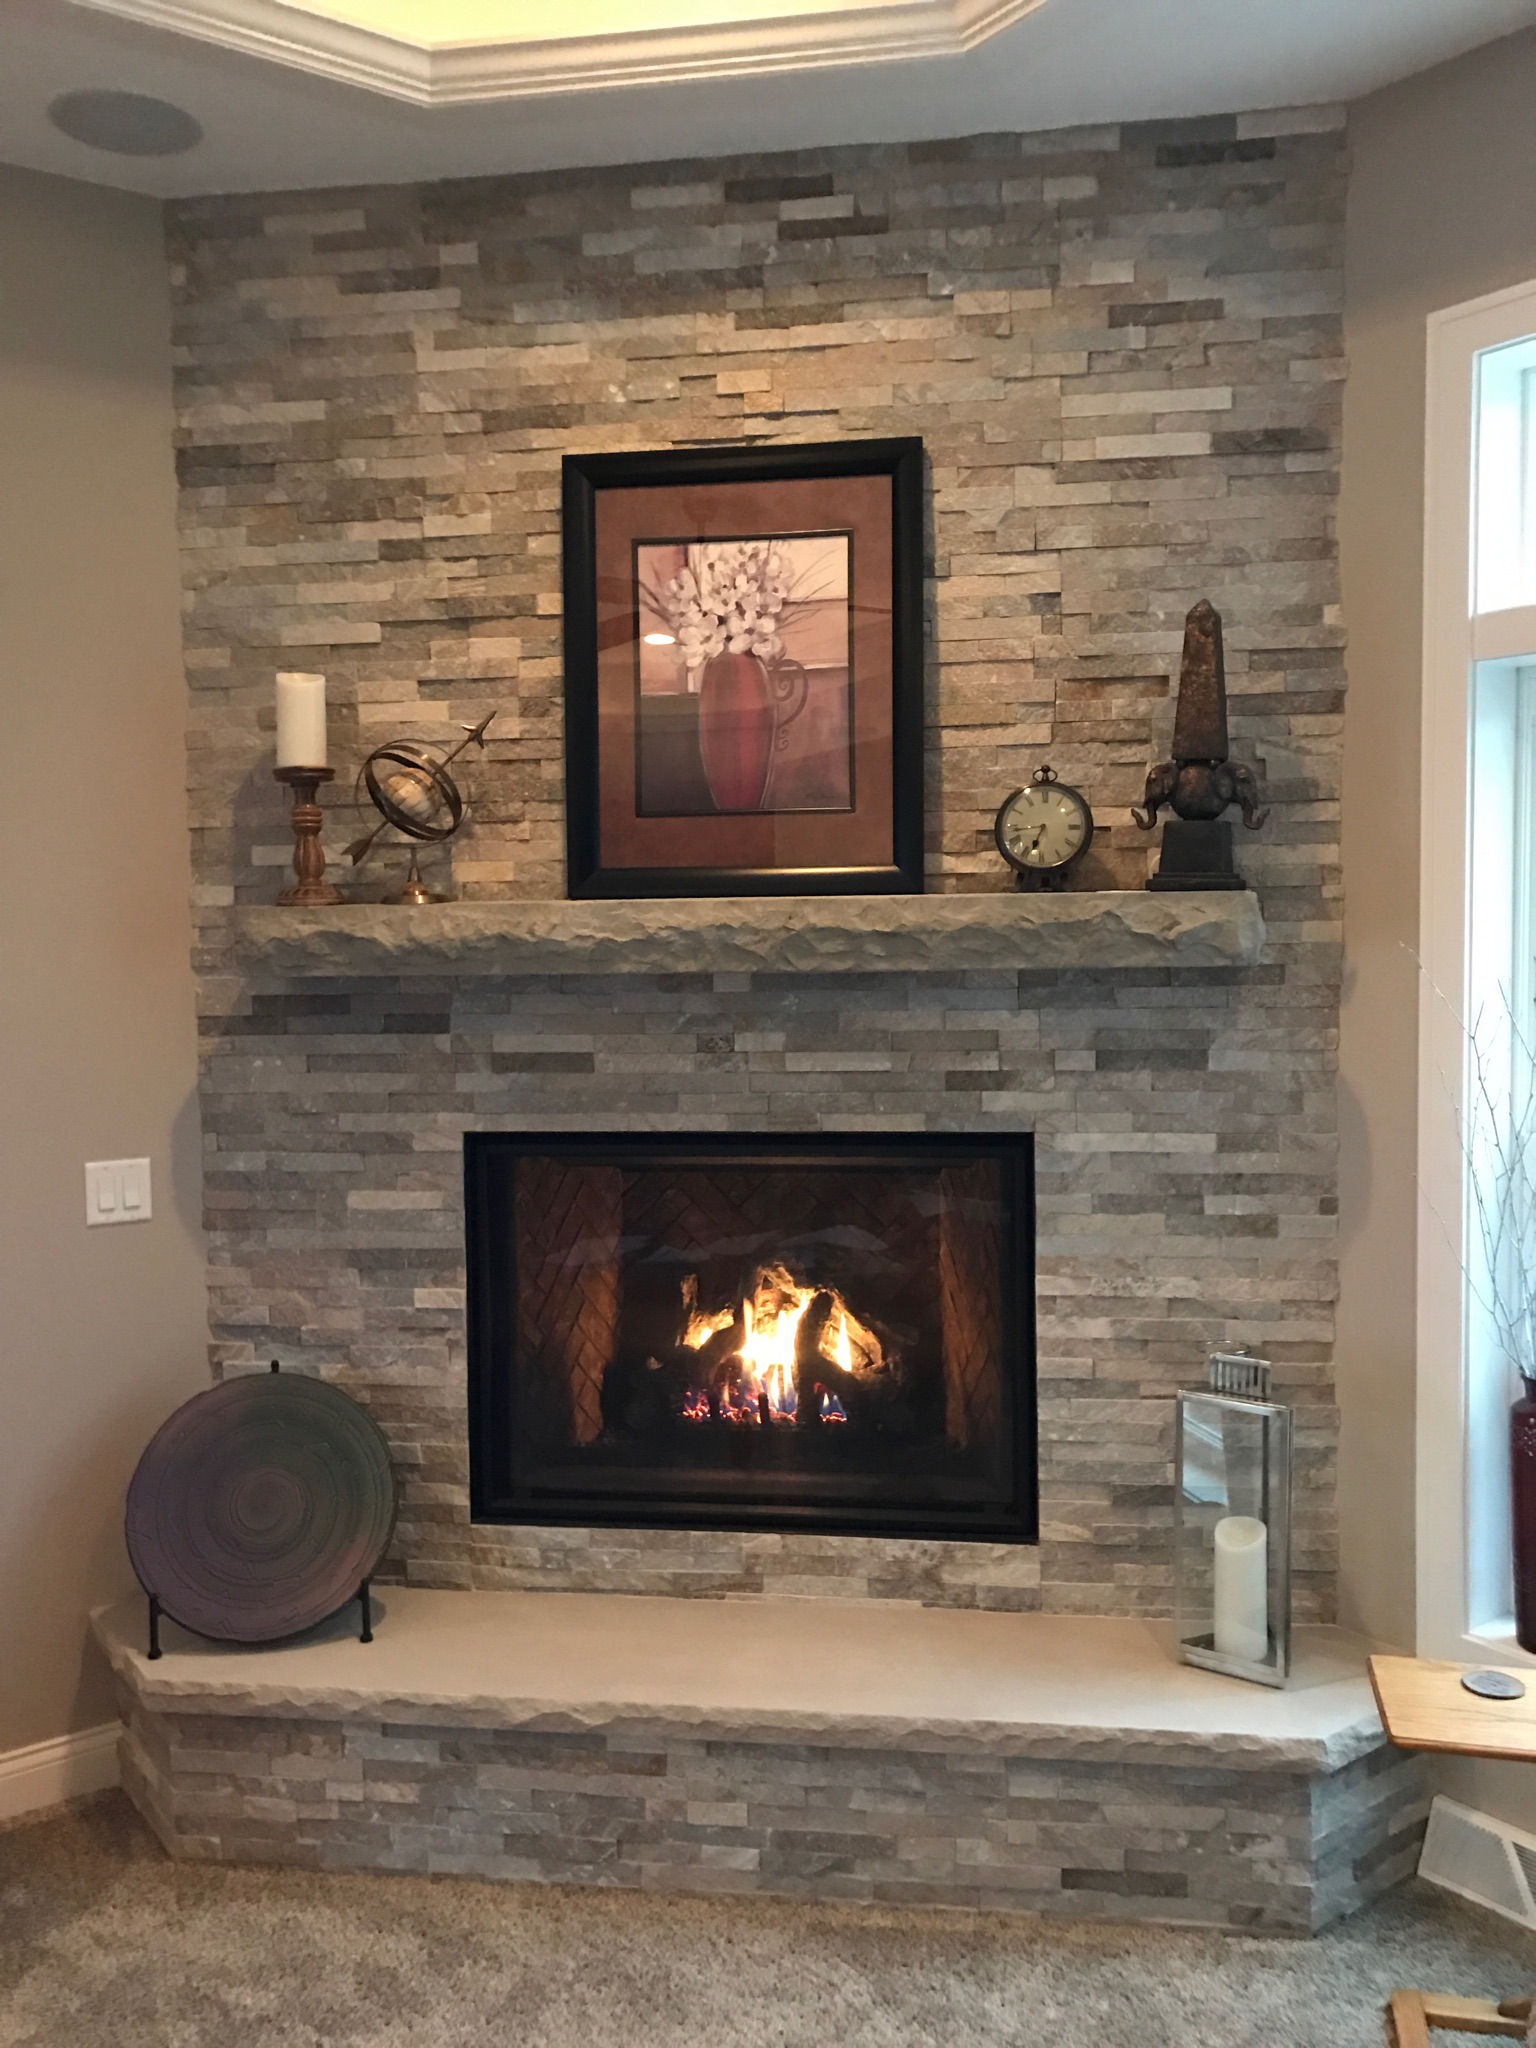 6 Ft Fireplace Mantel Chiseled Stone Non Combustible Mantel Hechler S Mainstreet